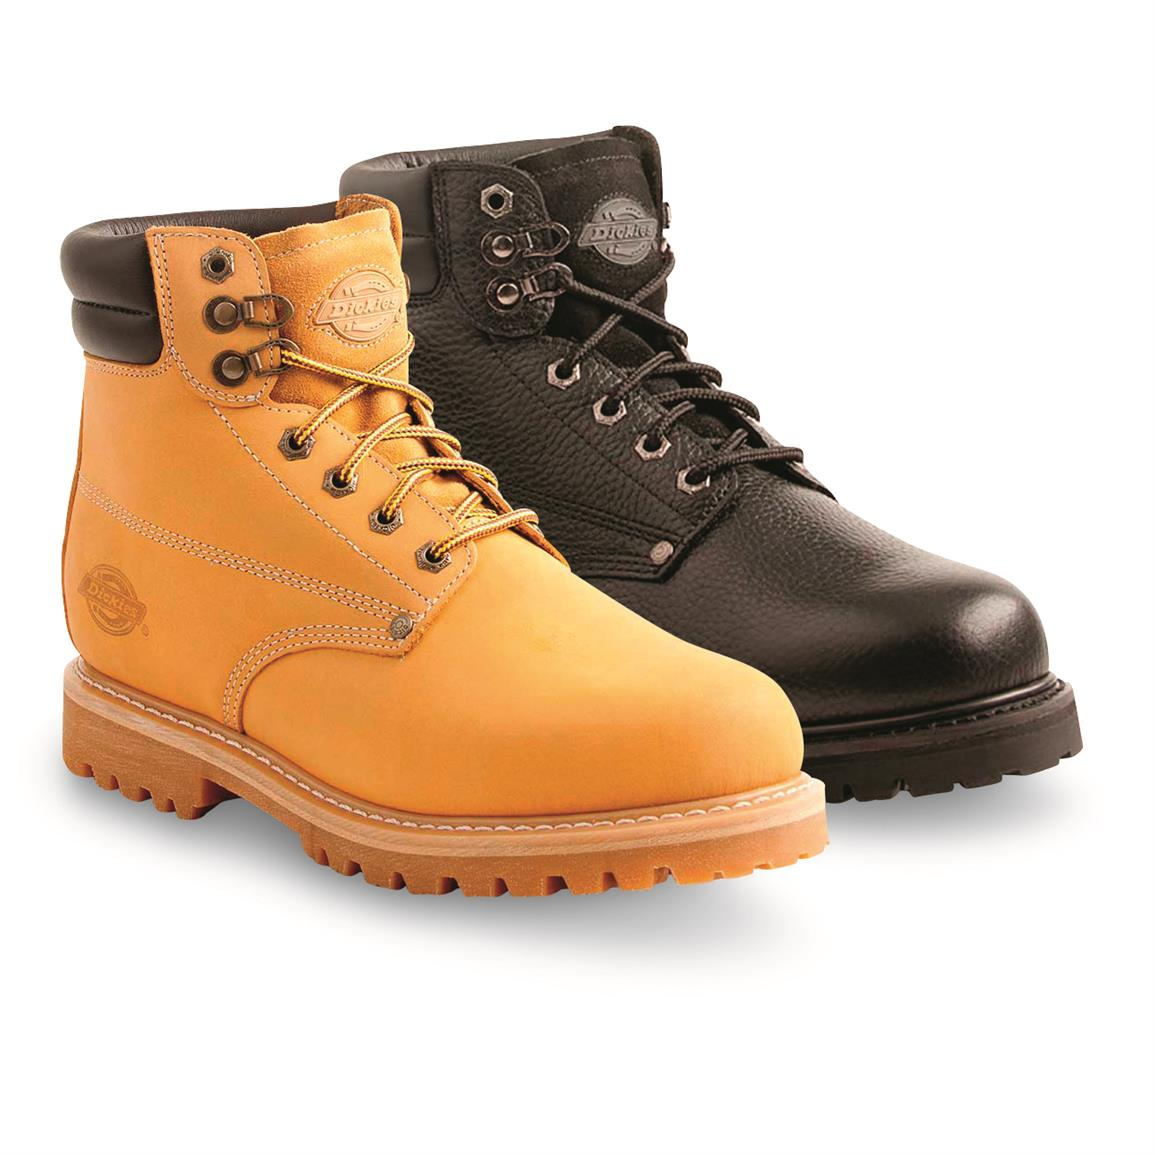 Dickies Men's Raider Steel Toe Work Boots